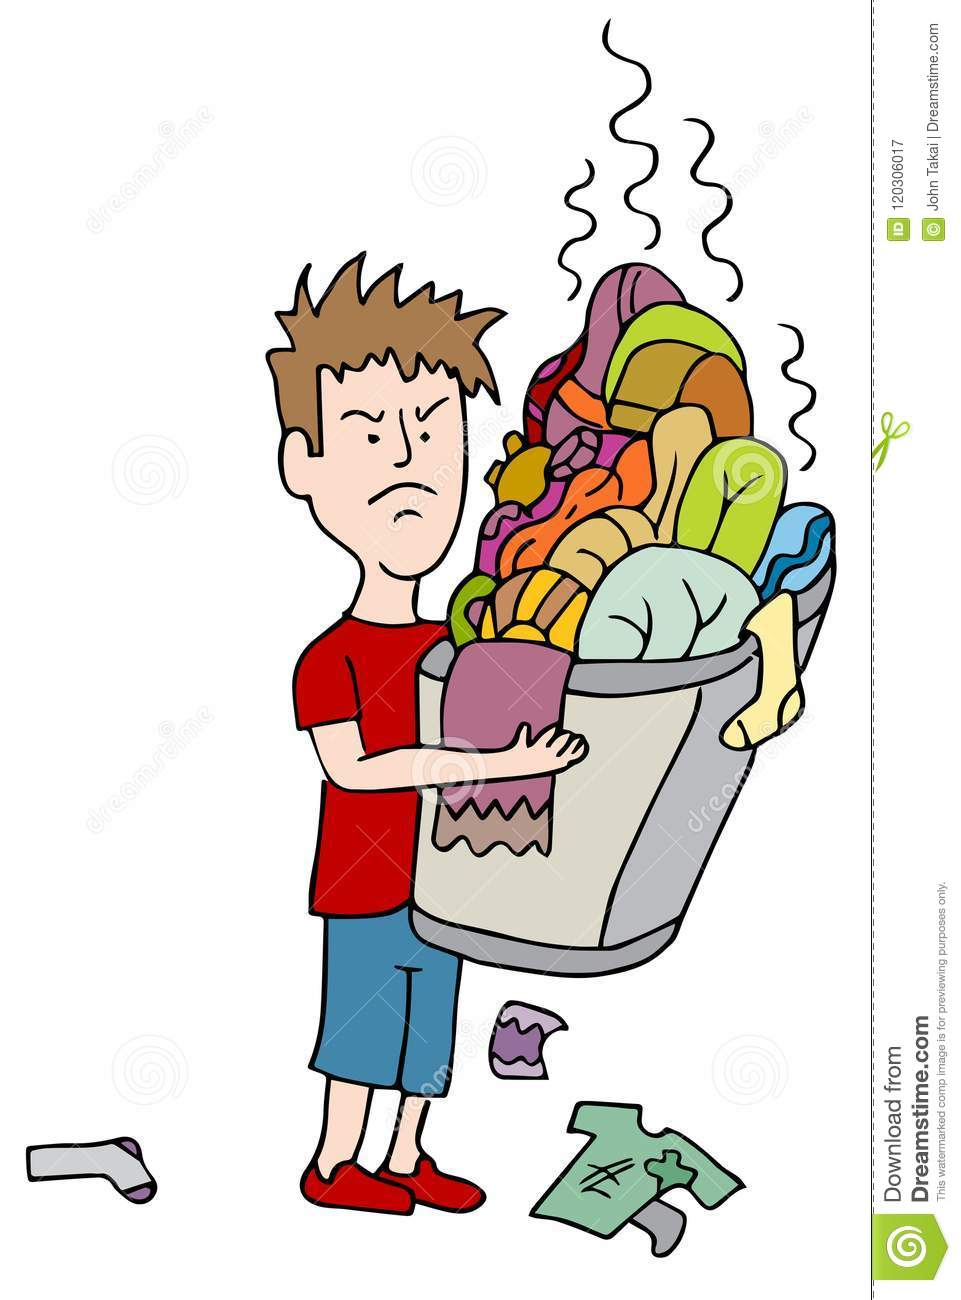 Angry Child Carrying Overflowing Basket of Dirty Laundry